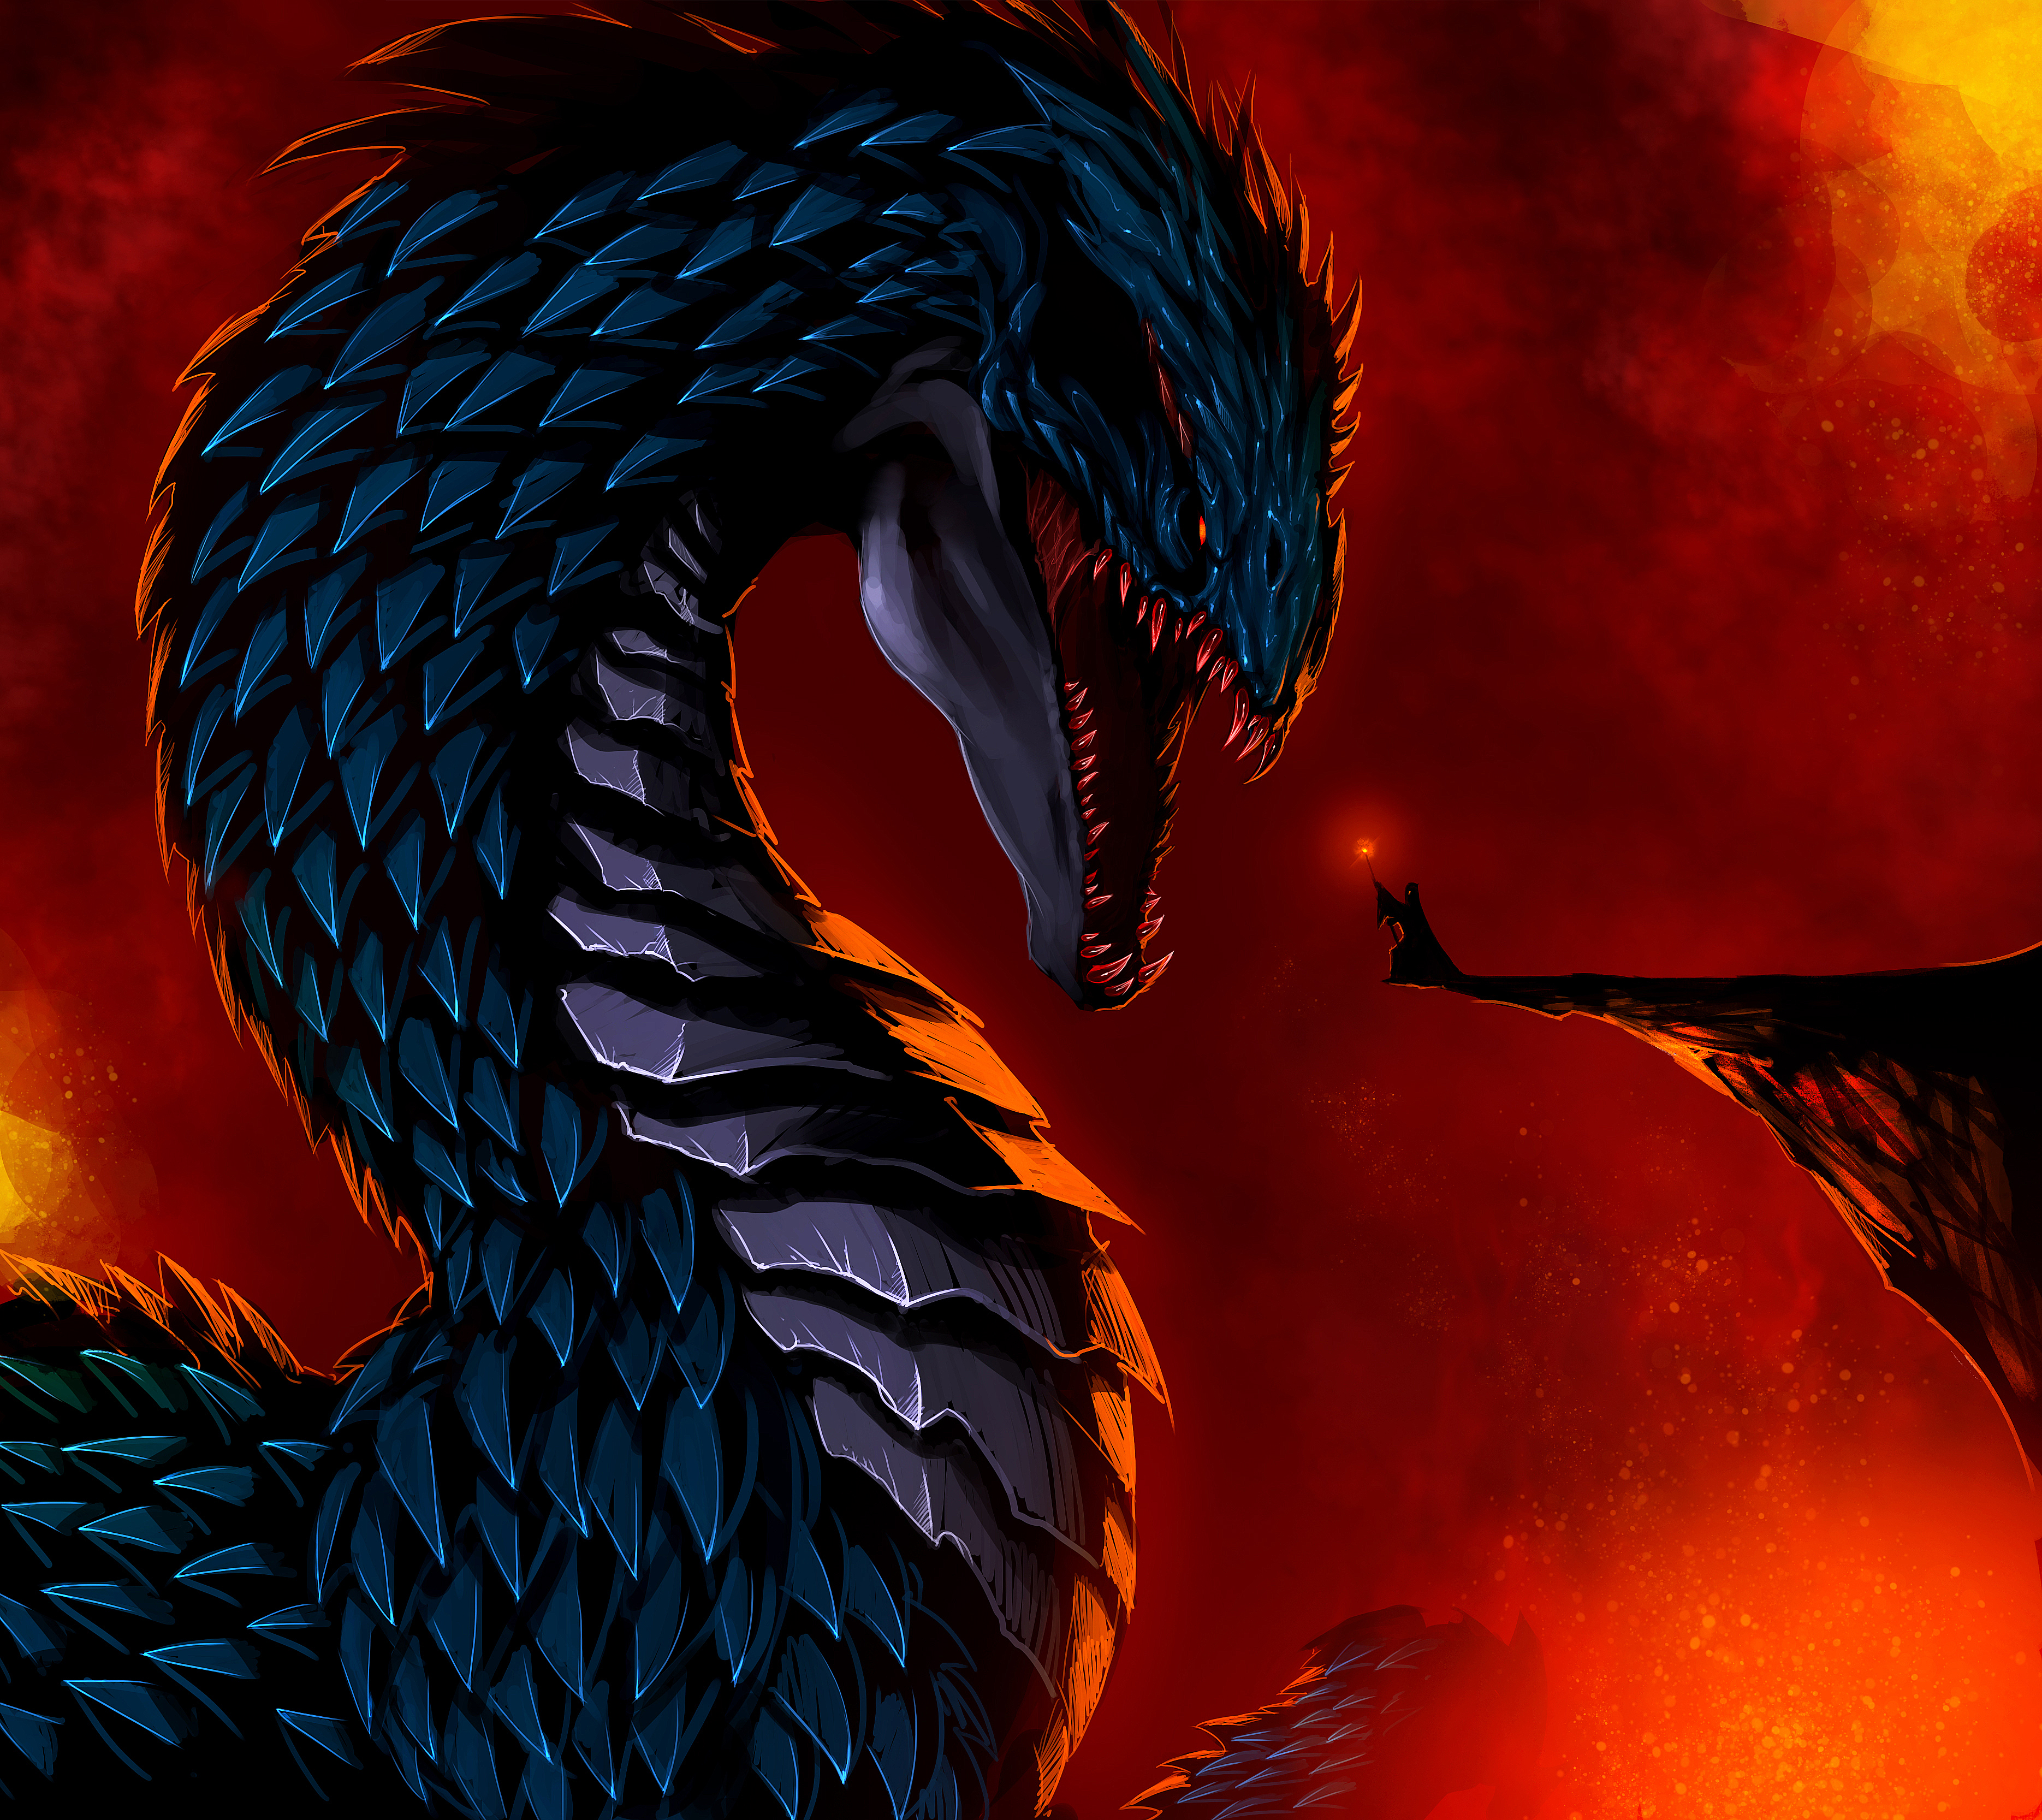 Warriors Fire And Ice Download: Dragon Summoning By TheRisingSoul On DeviantArt